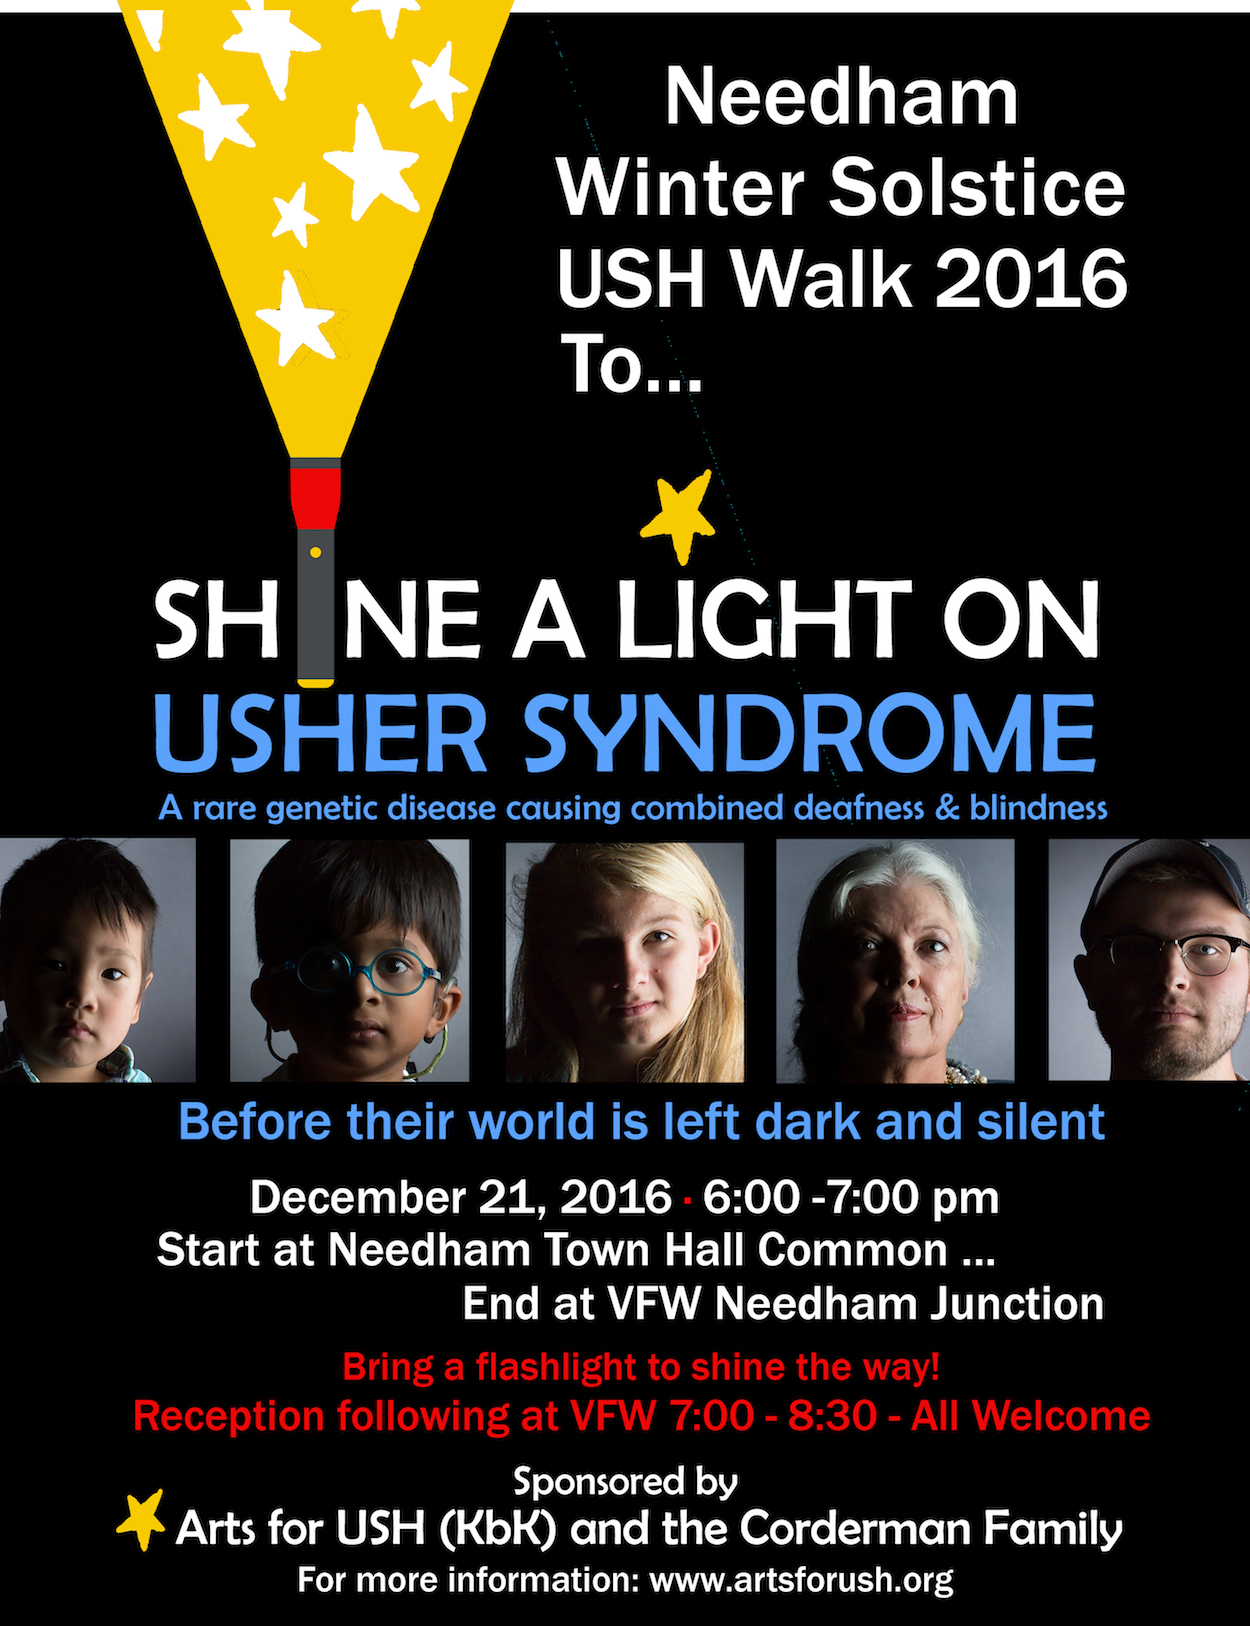 Flyer Image: Needham Winter Solstice USH Walk to Shine a Light on Usher Syndrome, a rare genetic disease causing combined deafness & blindness before their world is left dark and silent. Dec 21, 2016, 6-7pm. Start at Needham Town Hall Common, end at VFW N